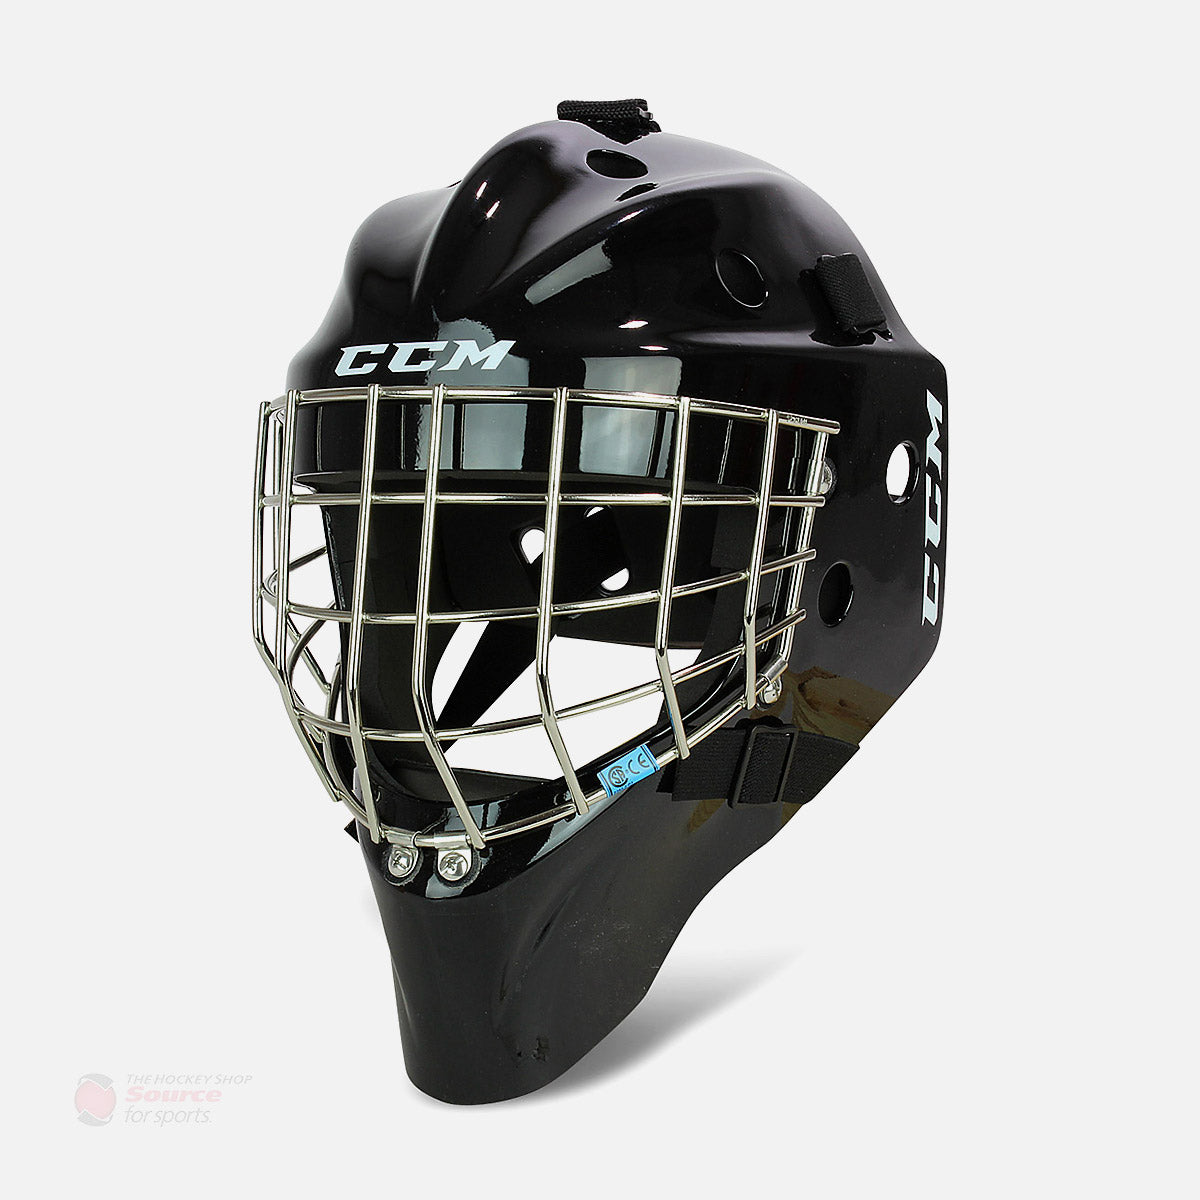 CCM L1.5 Junior Goalie Mask - Black